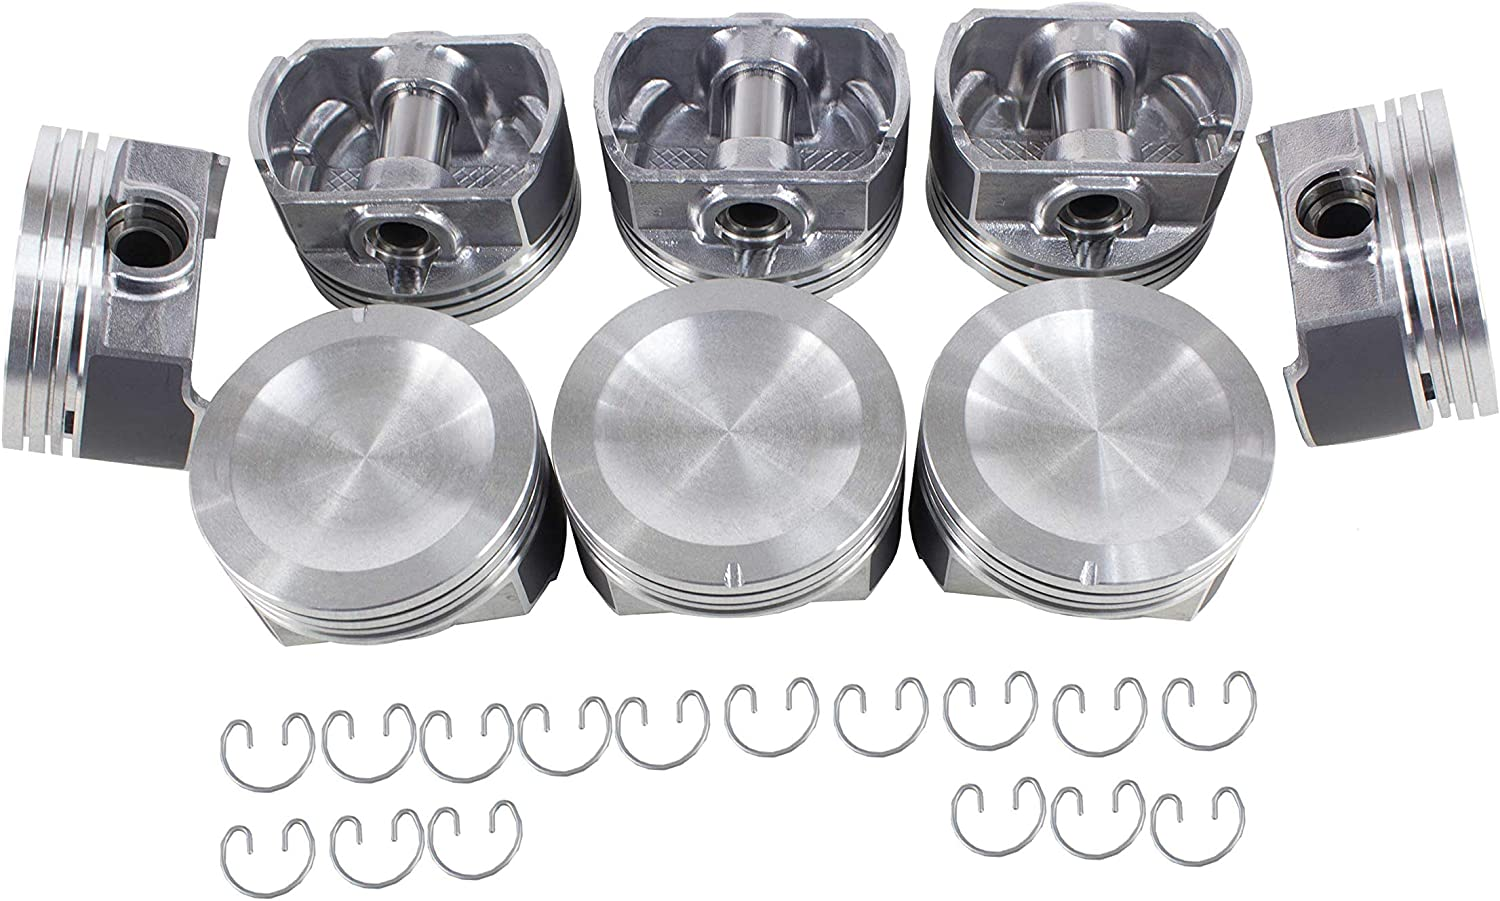 DNJ P4149 High quality new unisex Piston Set for 1995-2004 Ford Mercury Coug Lincoln